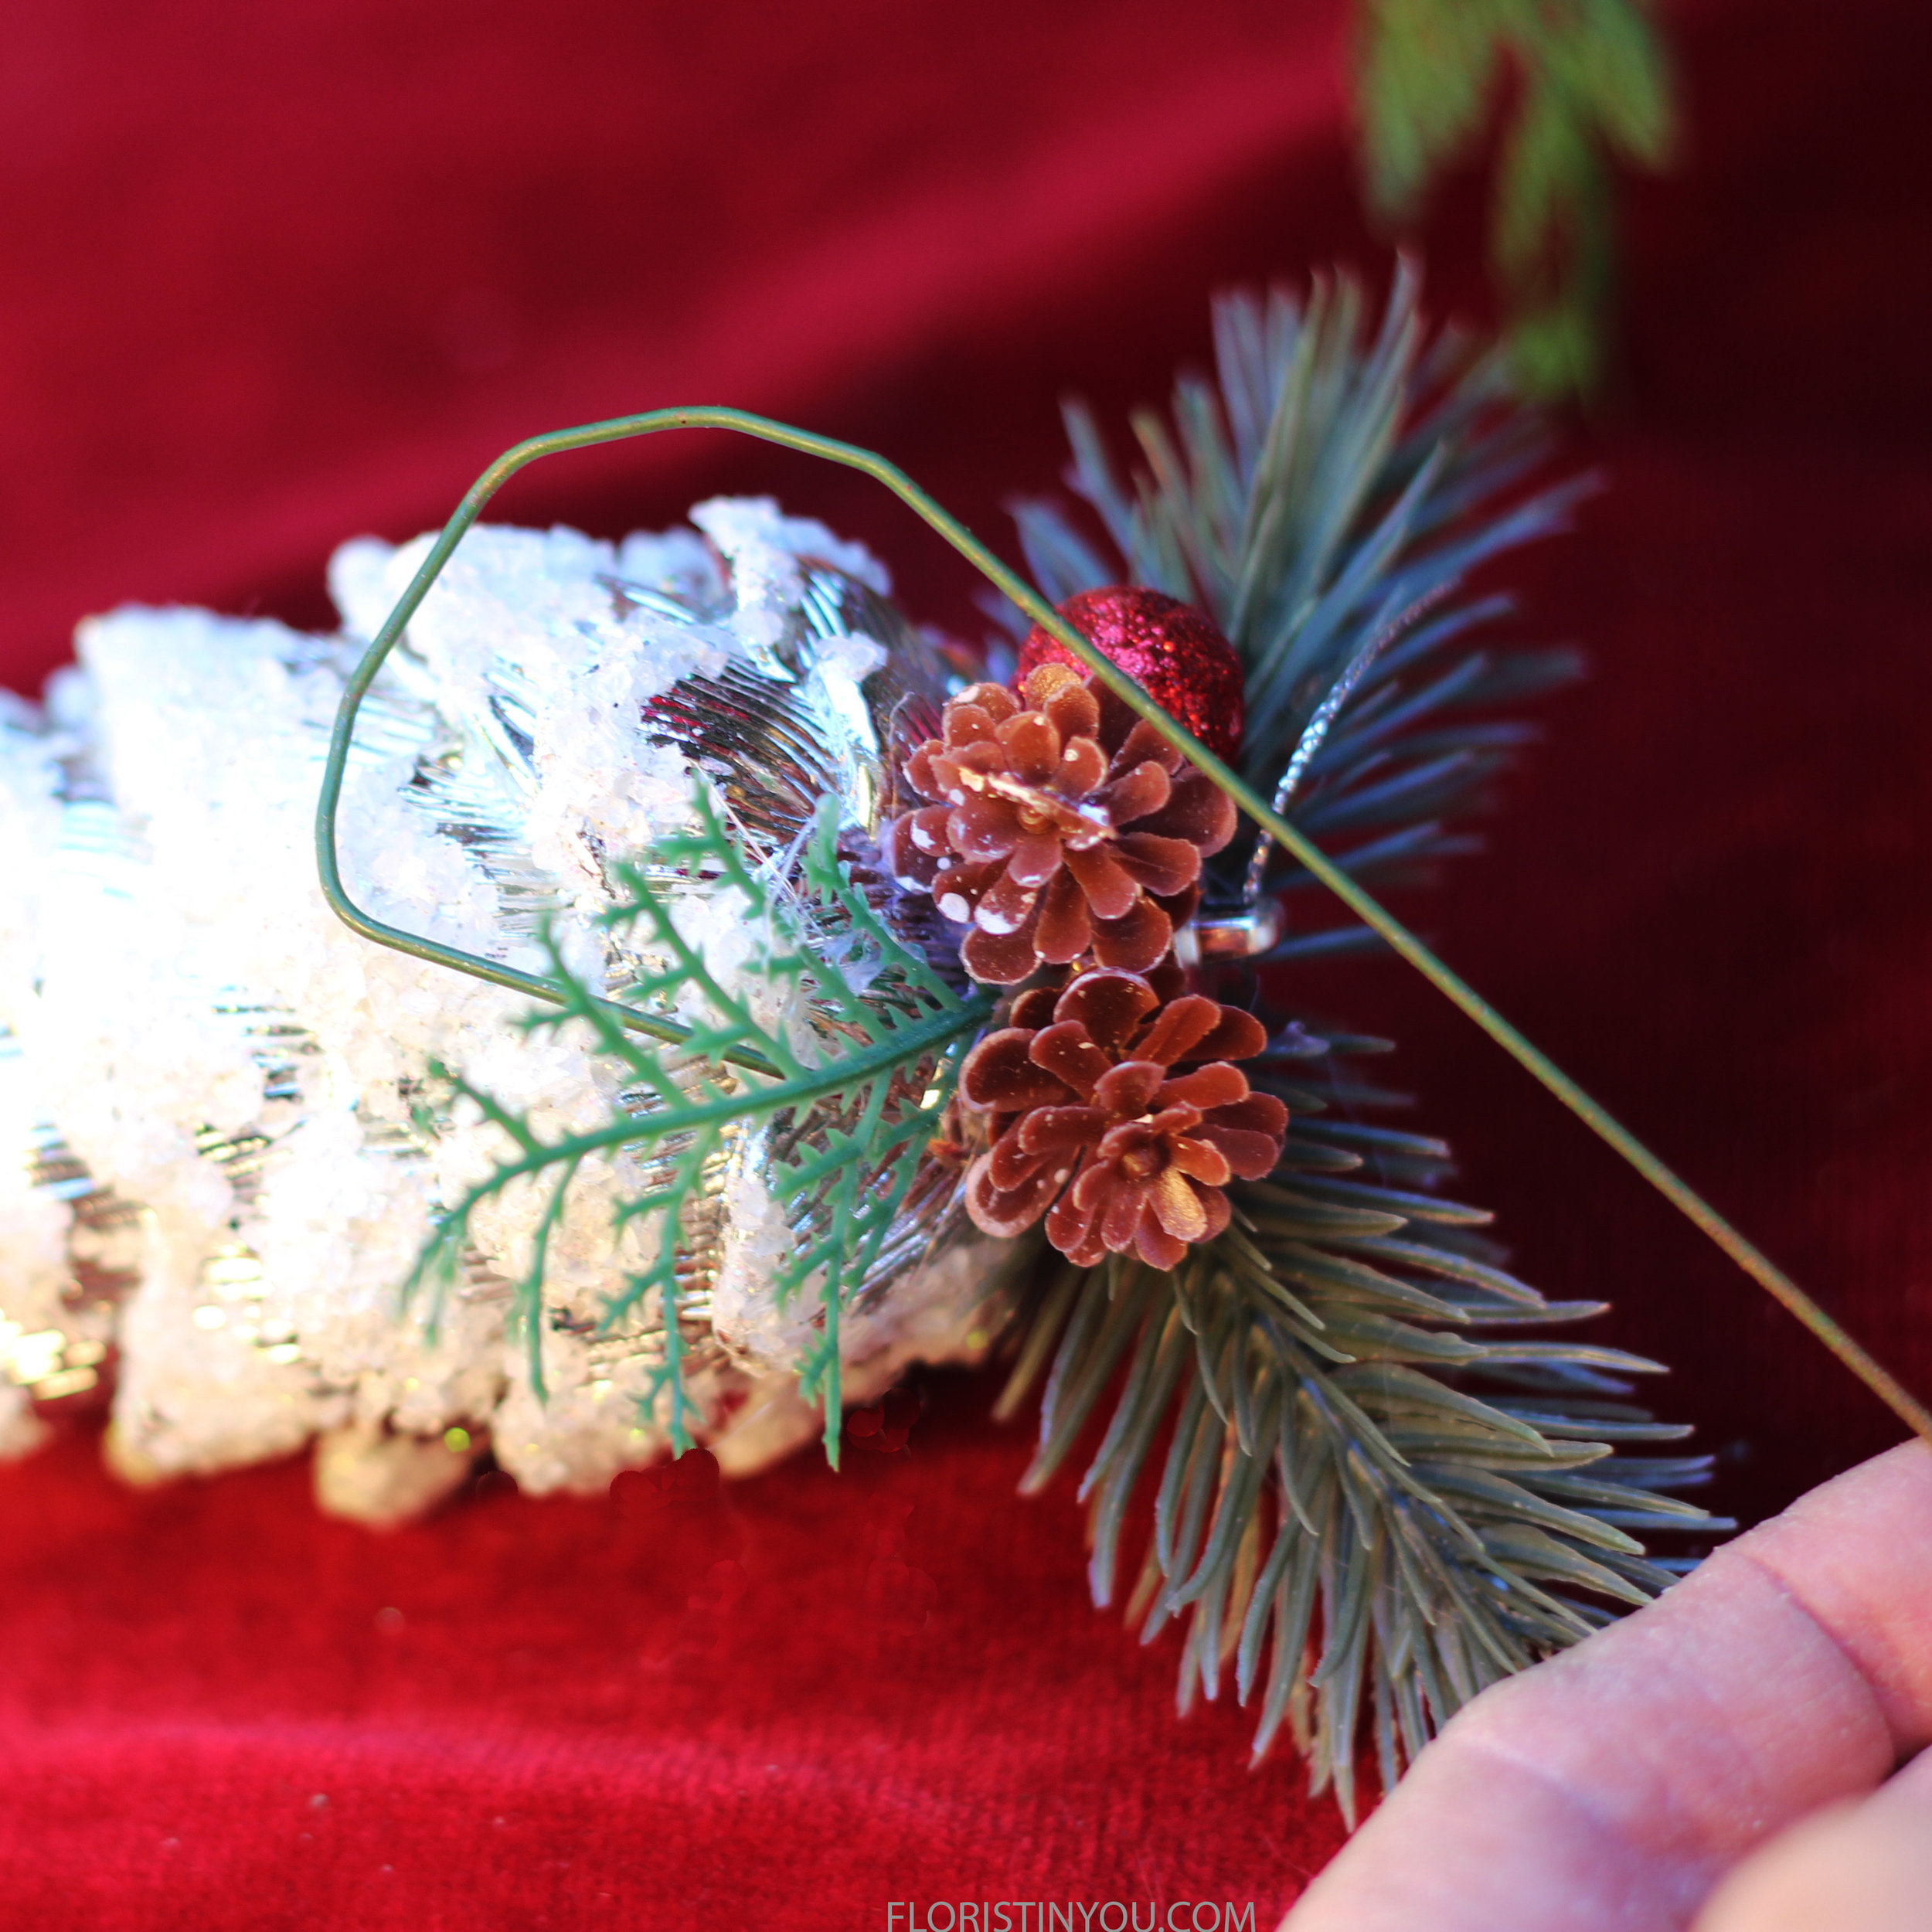 Wrap 8 inch wire around top of pine cone.